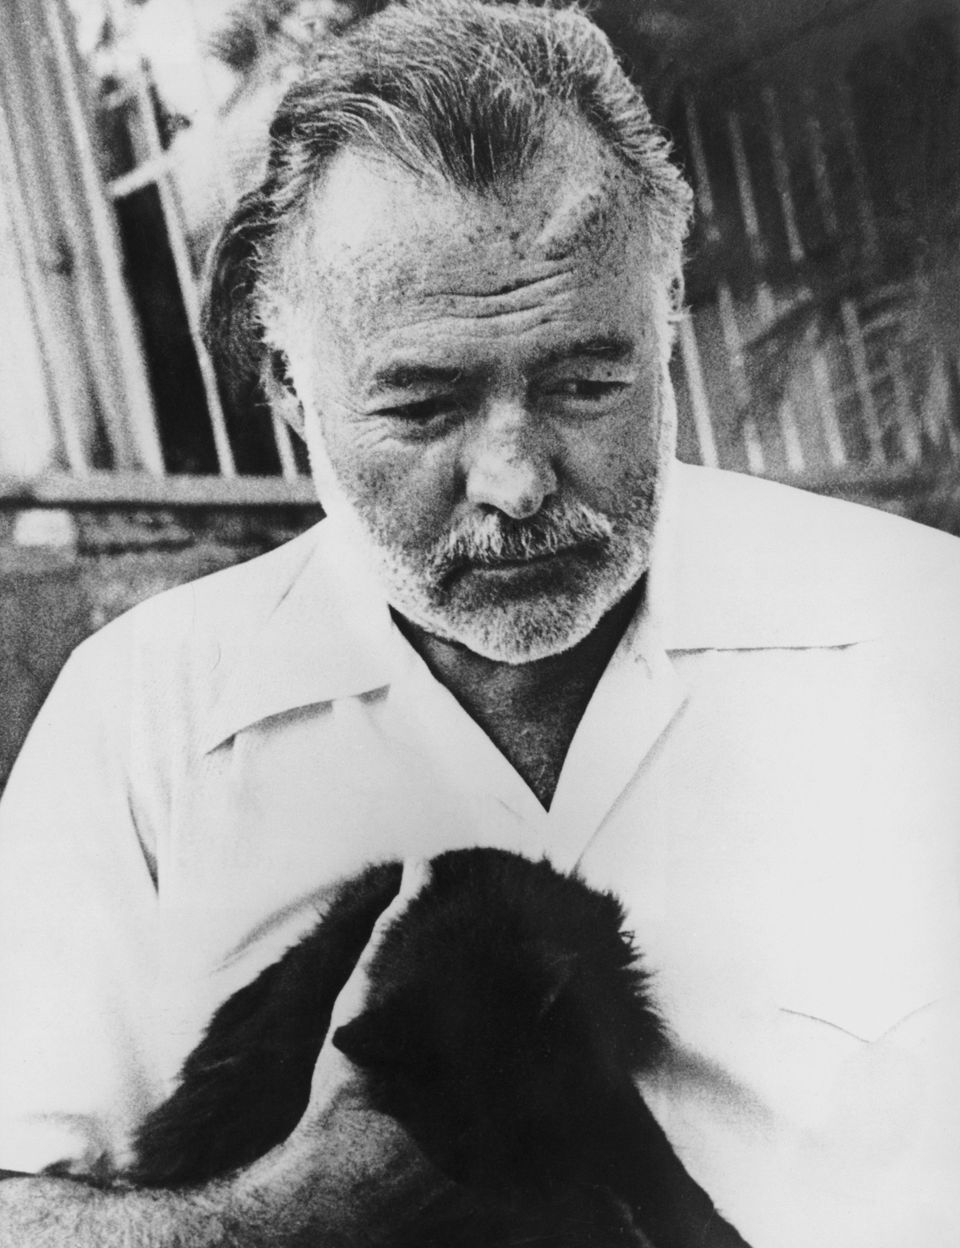 American novelist and journalist Ernest Hemingway (1899 - 1961) with his pet cat, circa